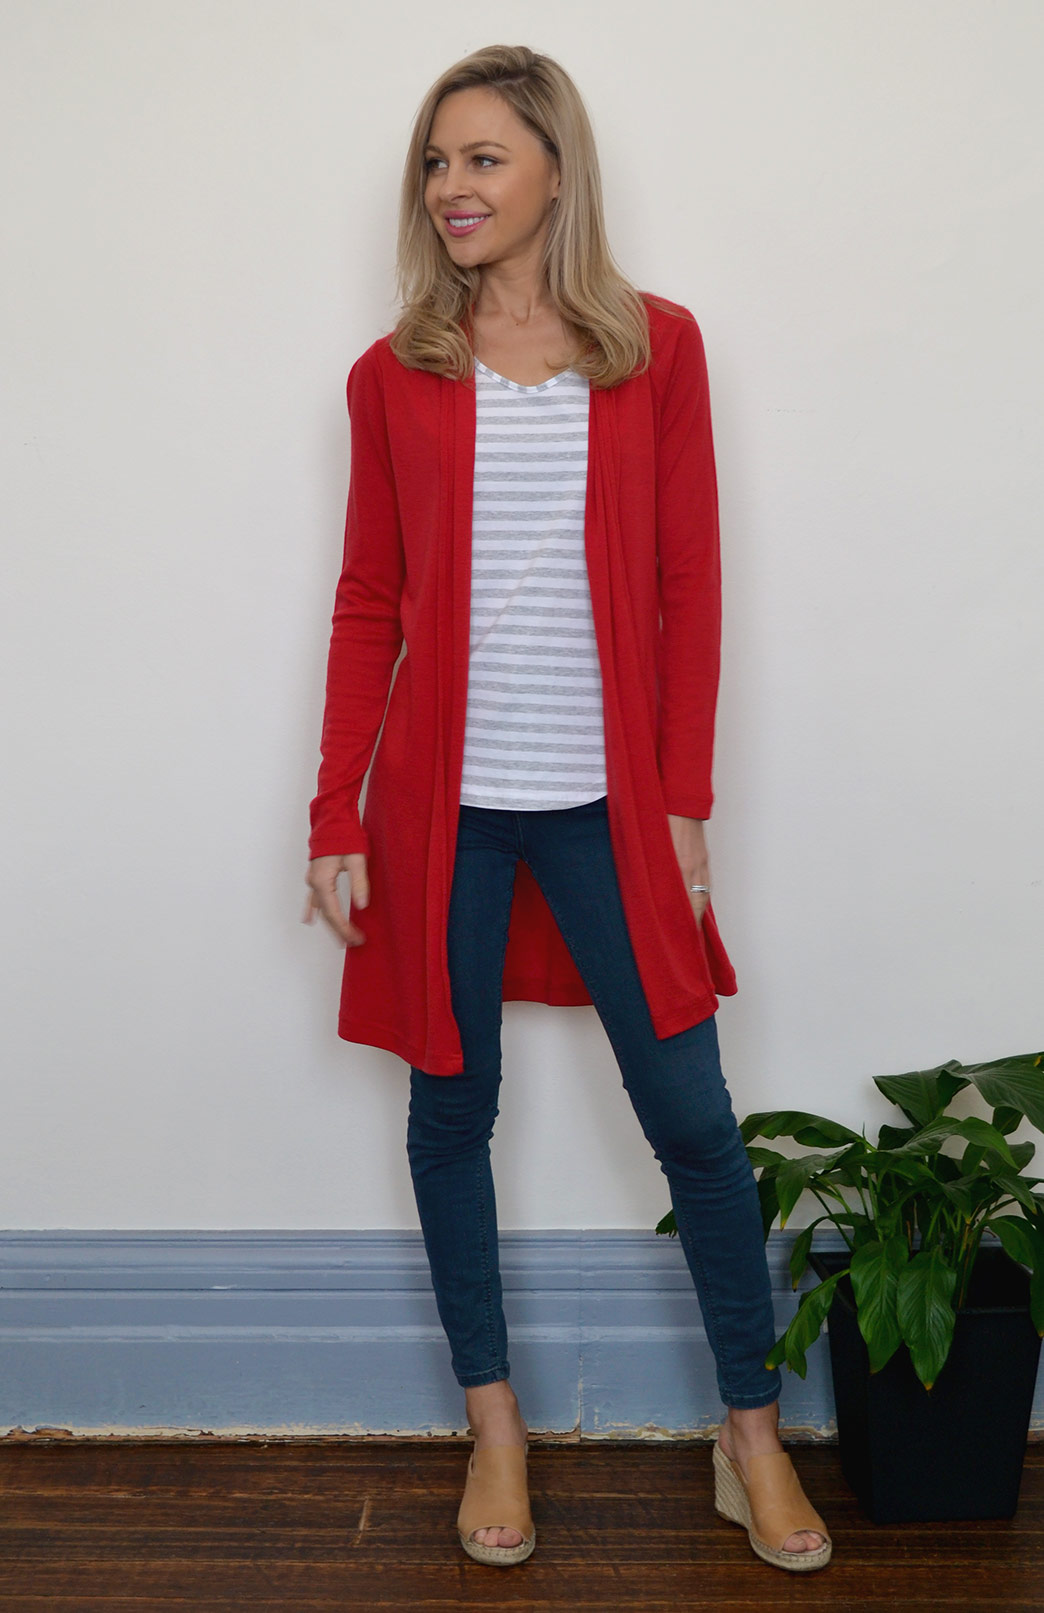 Drape Cardigan - Lightweight - Women's Flame Red Wool Drape Cardigan with no buttons or fastenings - Smitten Merino Tasmania Australia